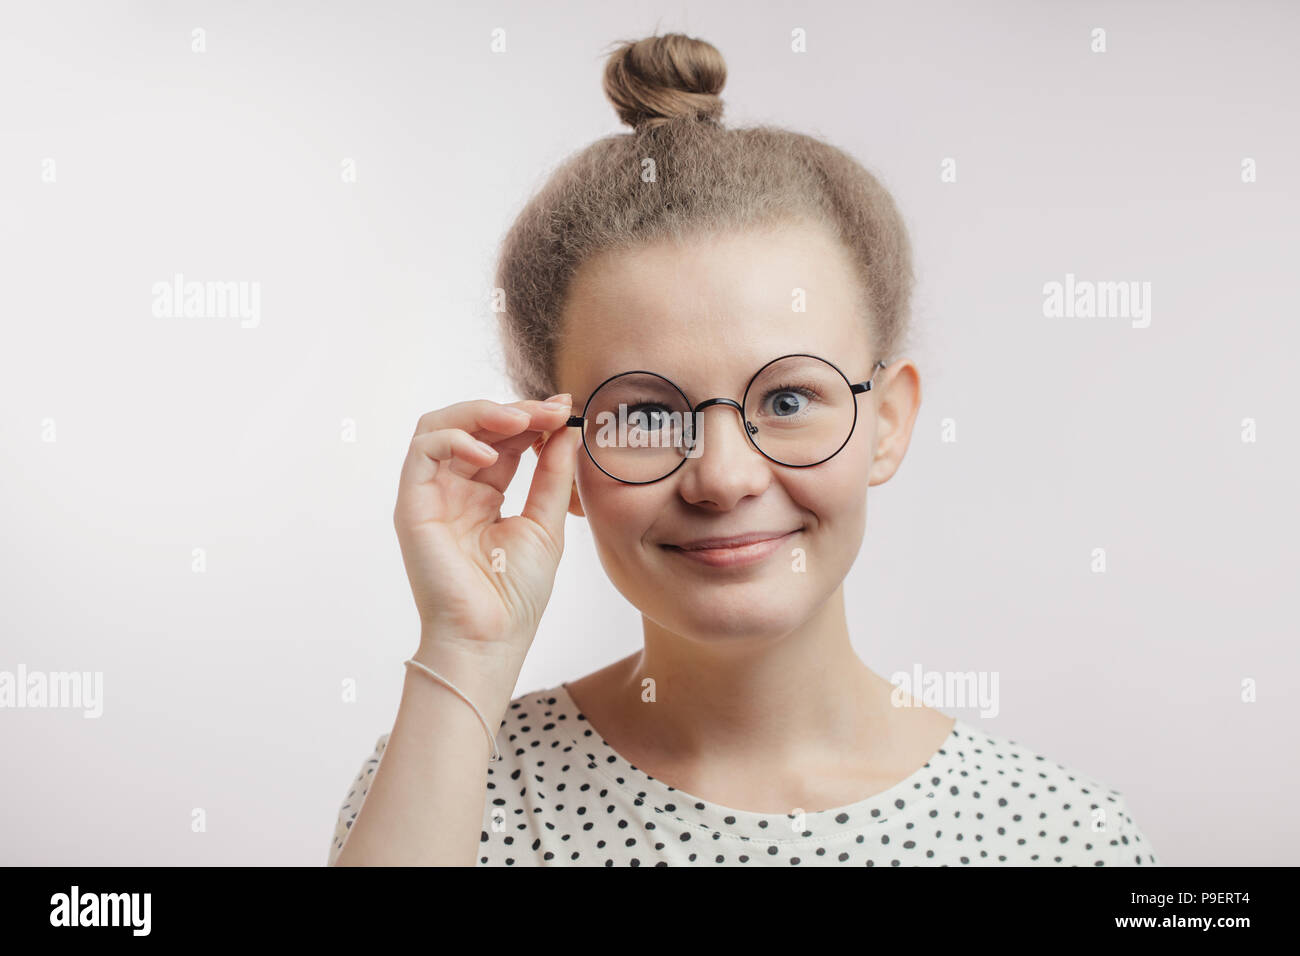 3731988cd498 young good-looking girl with blue eyes wearing round glasses isolated on  white background. touch glasses. kind teacher is full of enthusiasm.excited  s